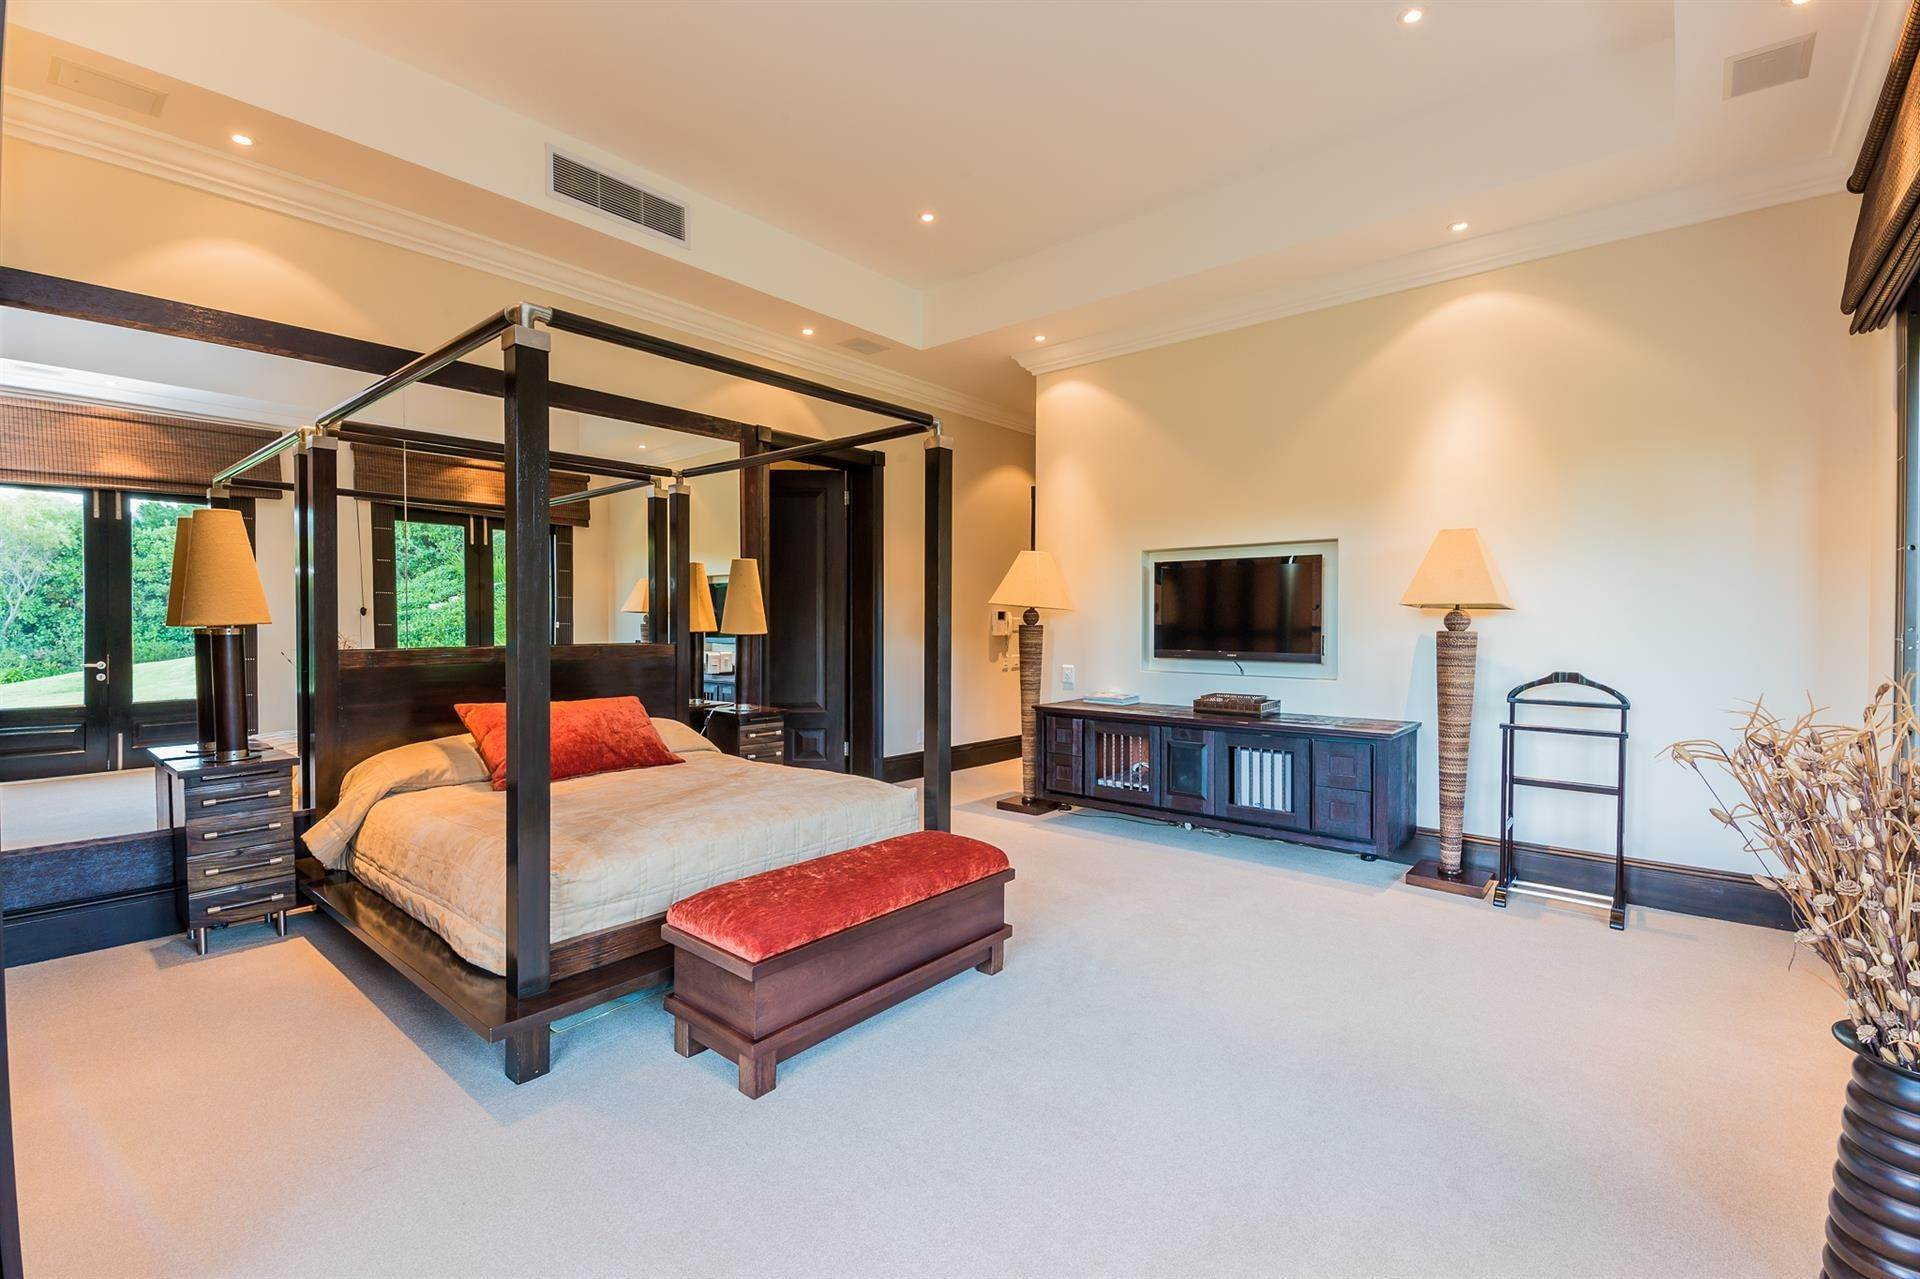 17. Estate for Sale at DISCREET LIFESTYLE FOR HIGH PROFILE INVESTORS Constantia, Western Cape,8001 South Africa